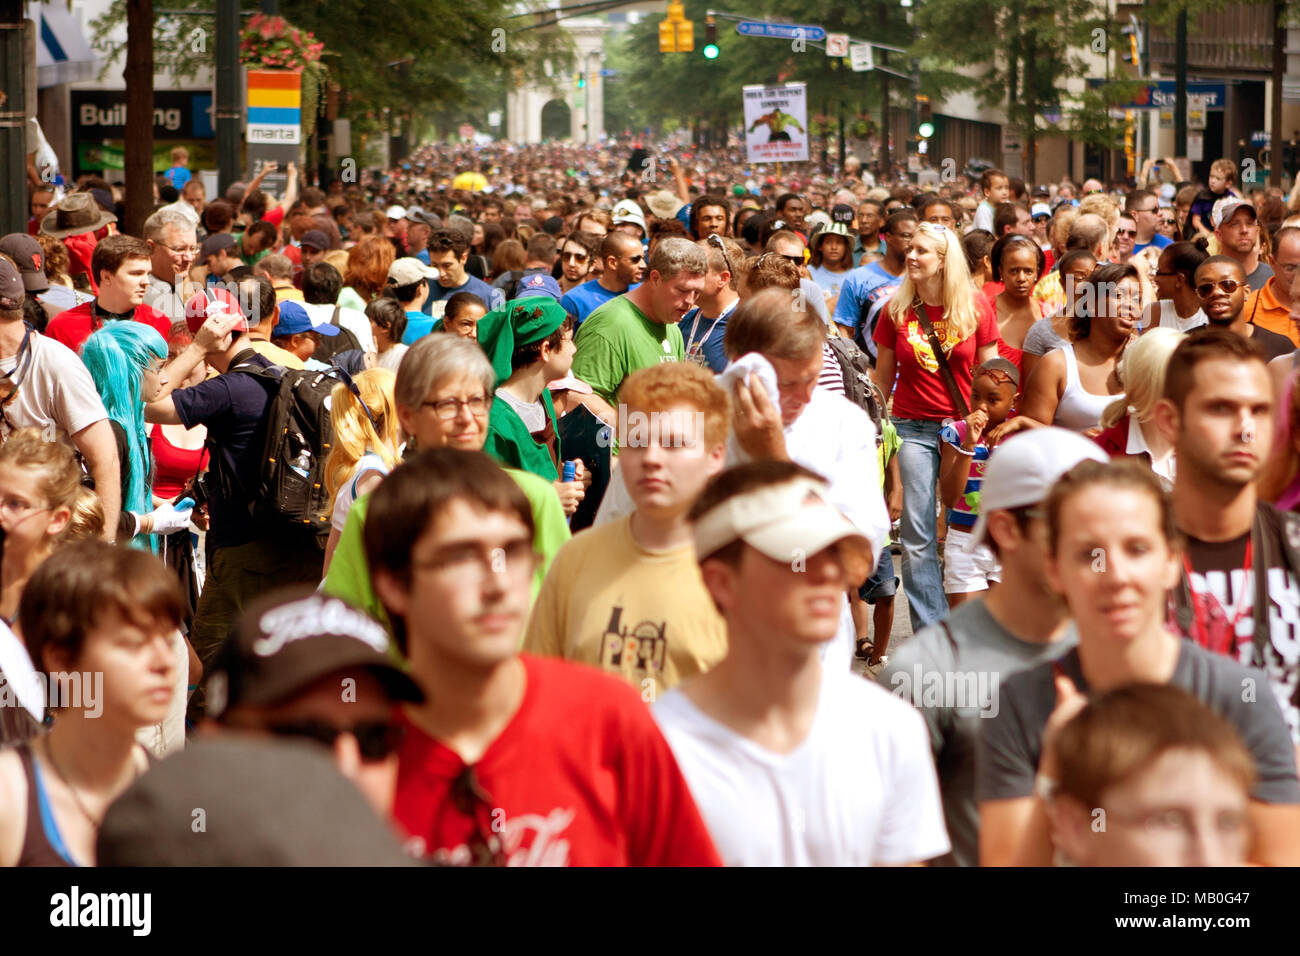 Atlanta, GA, USA - August 31, 2013:  Thousands of spectators fill Peachtree Street following the annual Dragon Con parade. - Stock Image